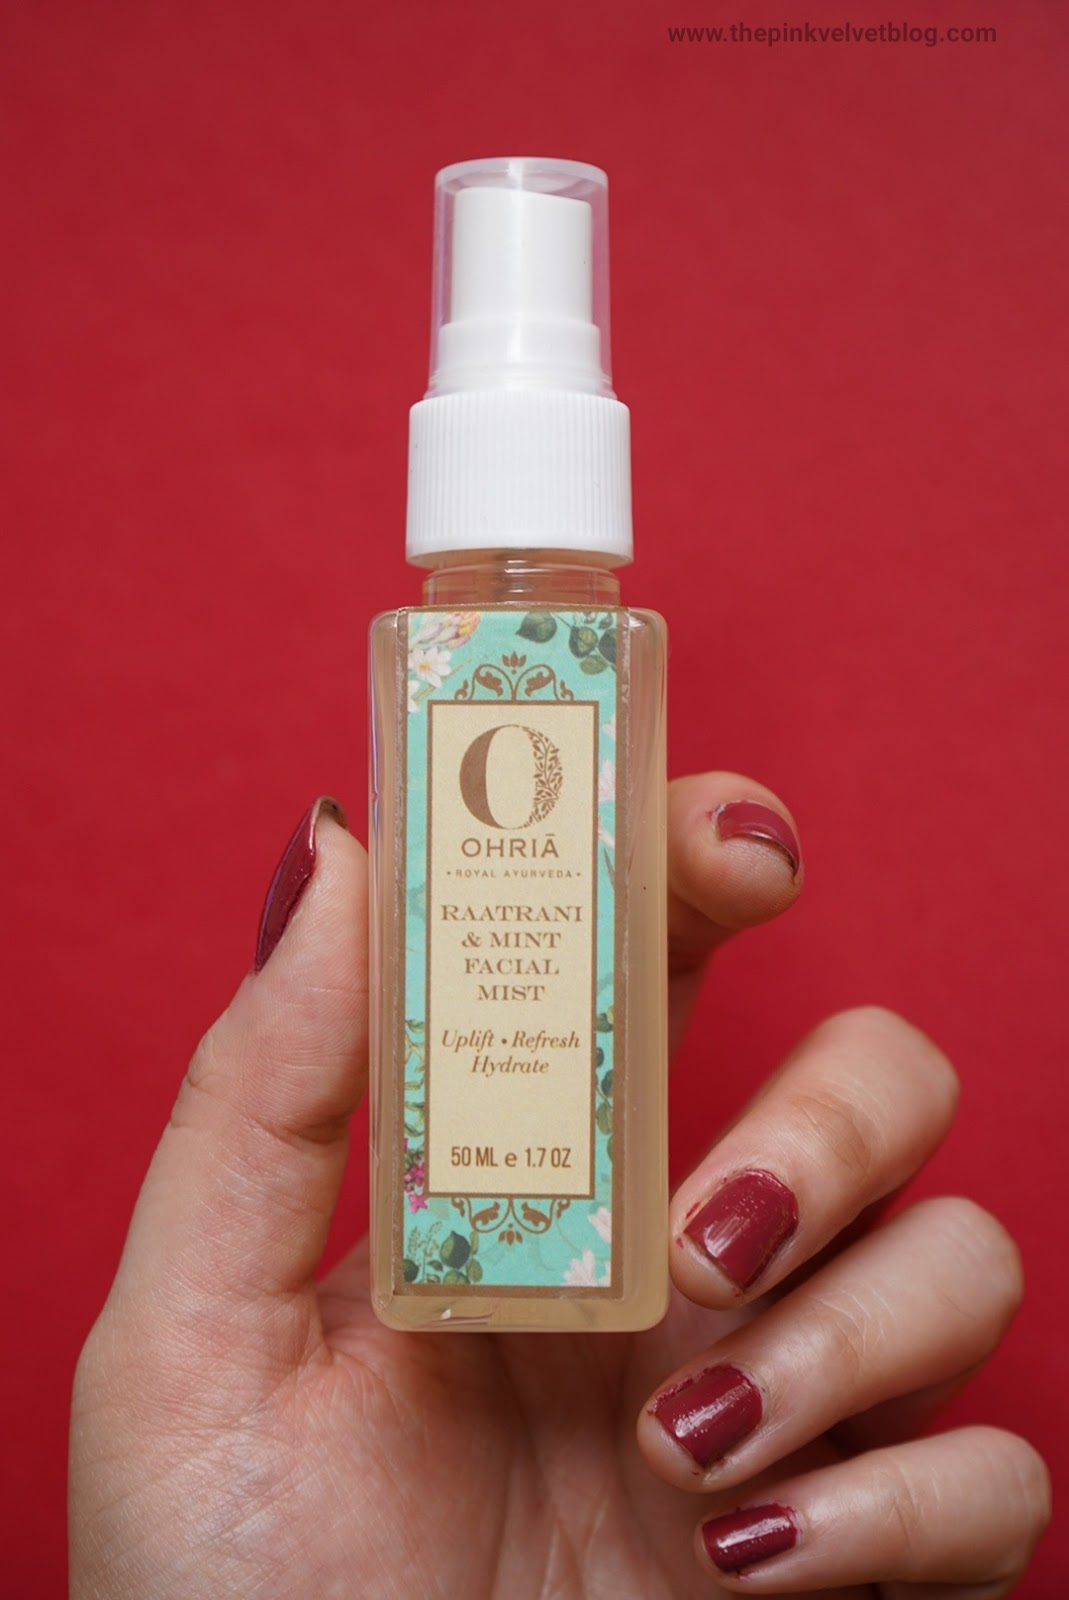 The Sensational Six September FAB BAG - Ohria Raatrani and Mint Facial Mist